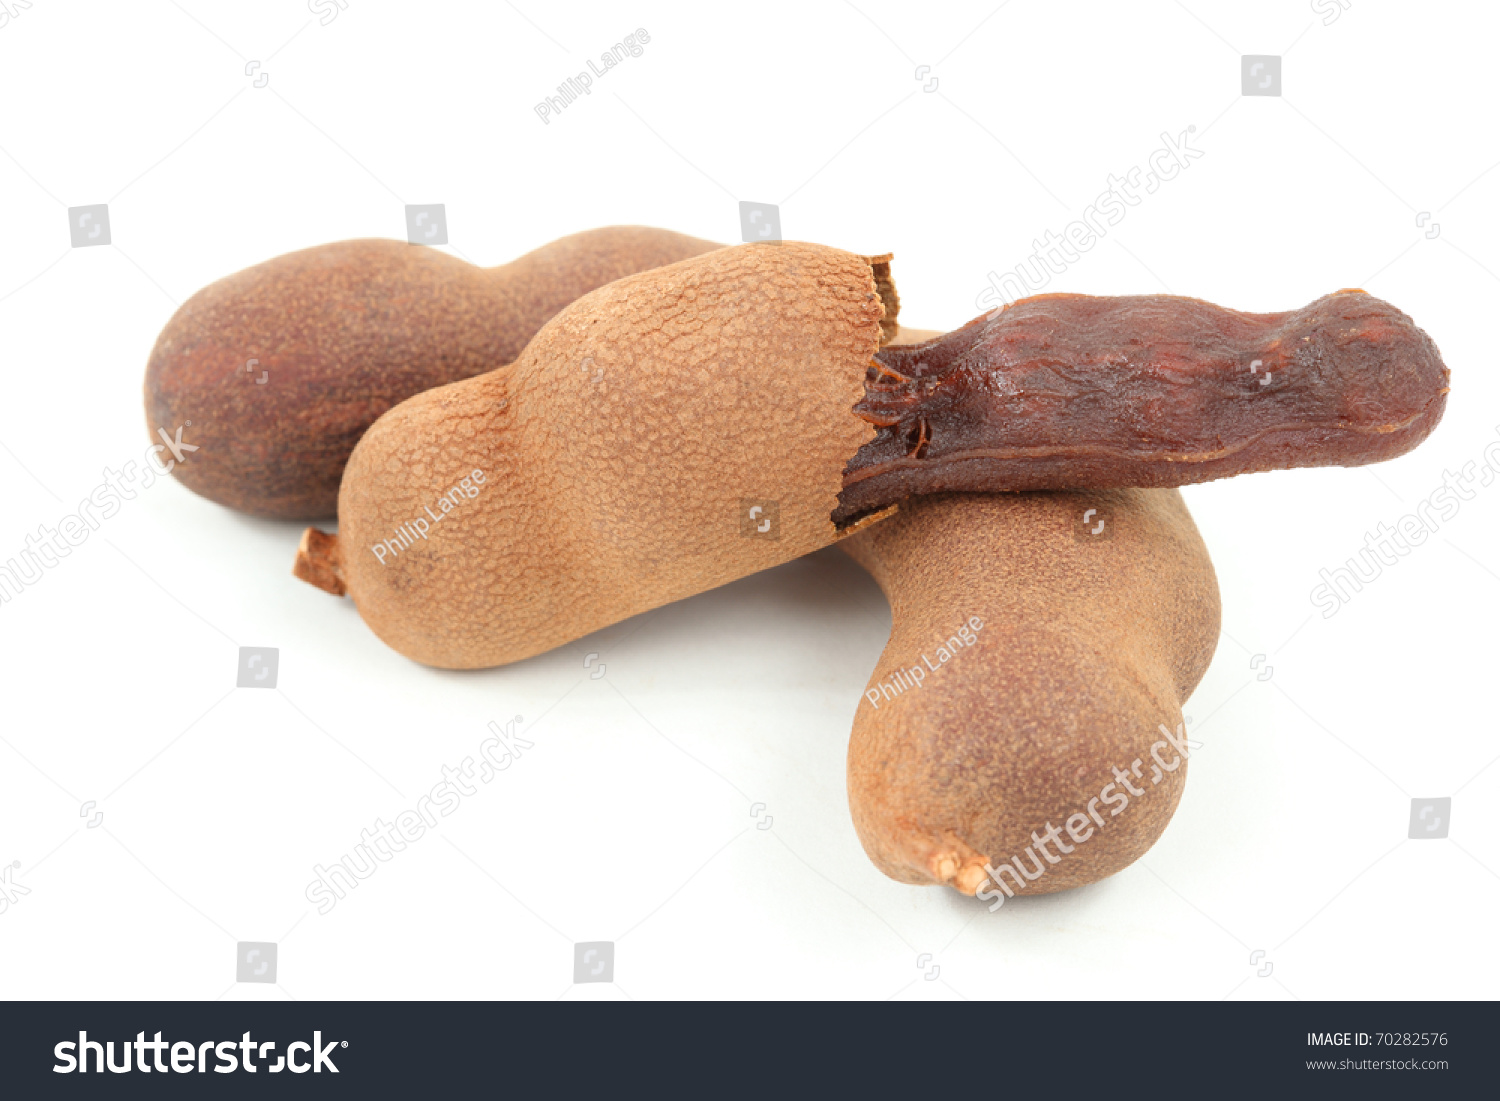 Closeup Of Tamarind Fruits Over White Background Stock Photo 70282576 : Shutterstock